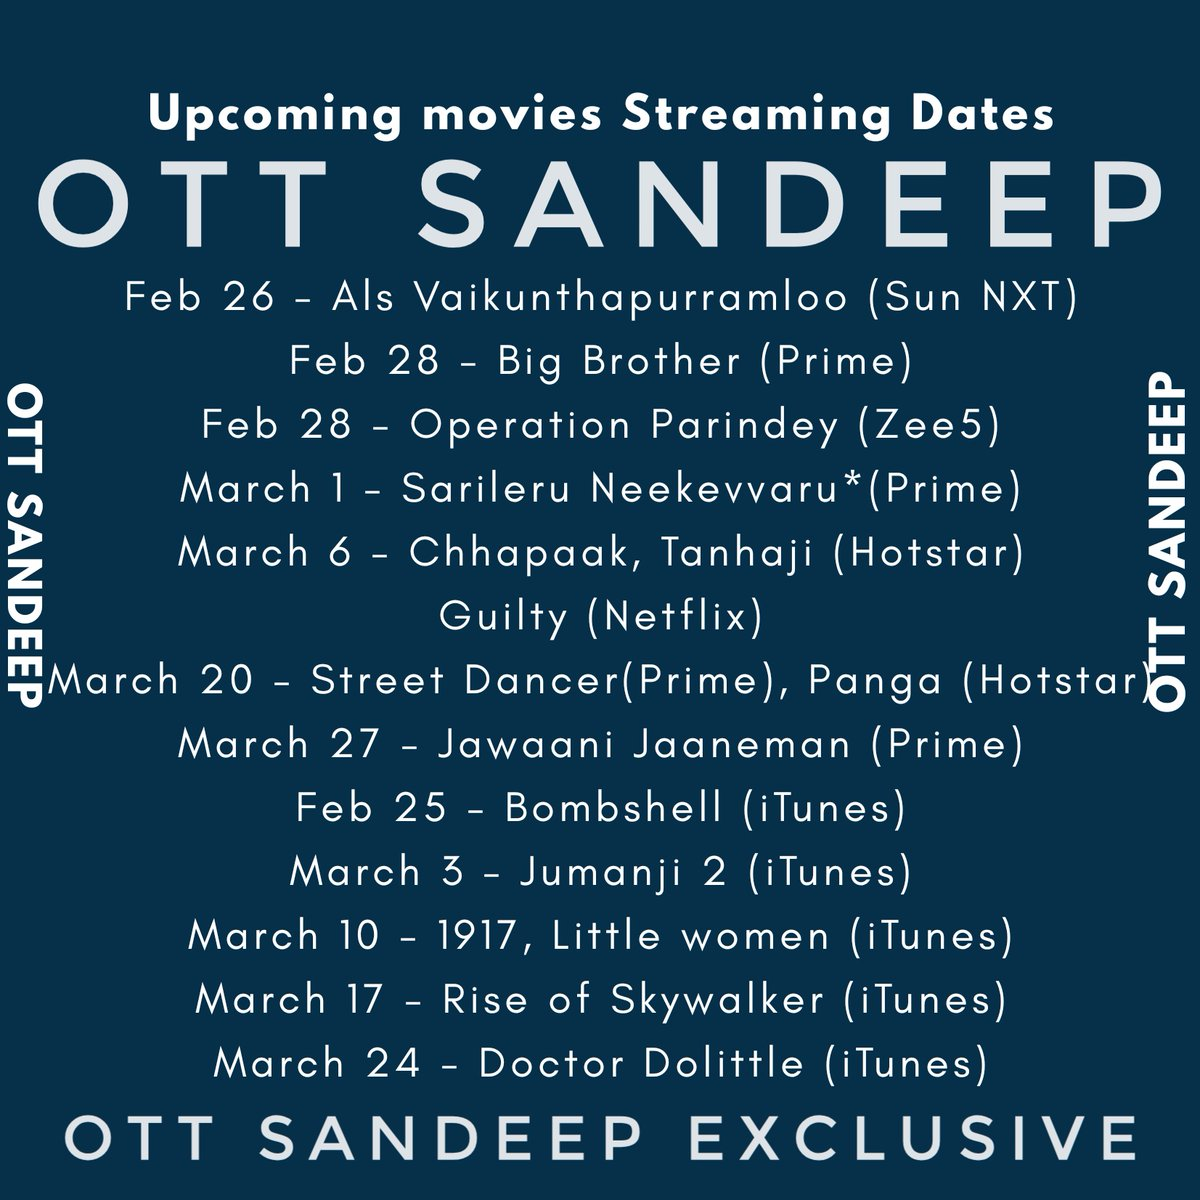 Follow @OTTSandeep for exclusive updates:  Upcoming movies and their streaming dates. What we mention below are mostly confirmed dates. Which we didn't mention we don't know about them. #AlaVaikunthapurramloo. #SarileruNeekevvaru. #Chhapaak. #Tanhaji. #BigBrother. #StreetDancer. <br>http://pic.twitter.com/octtquAOGu